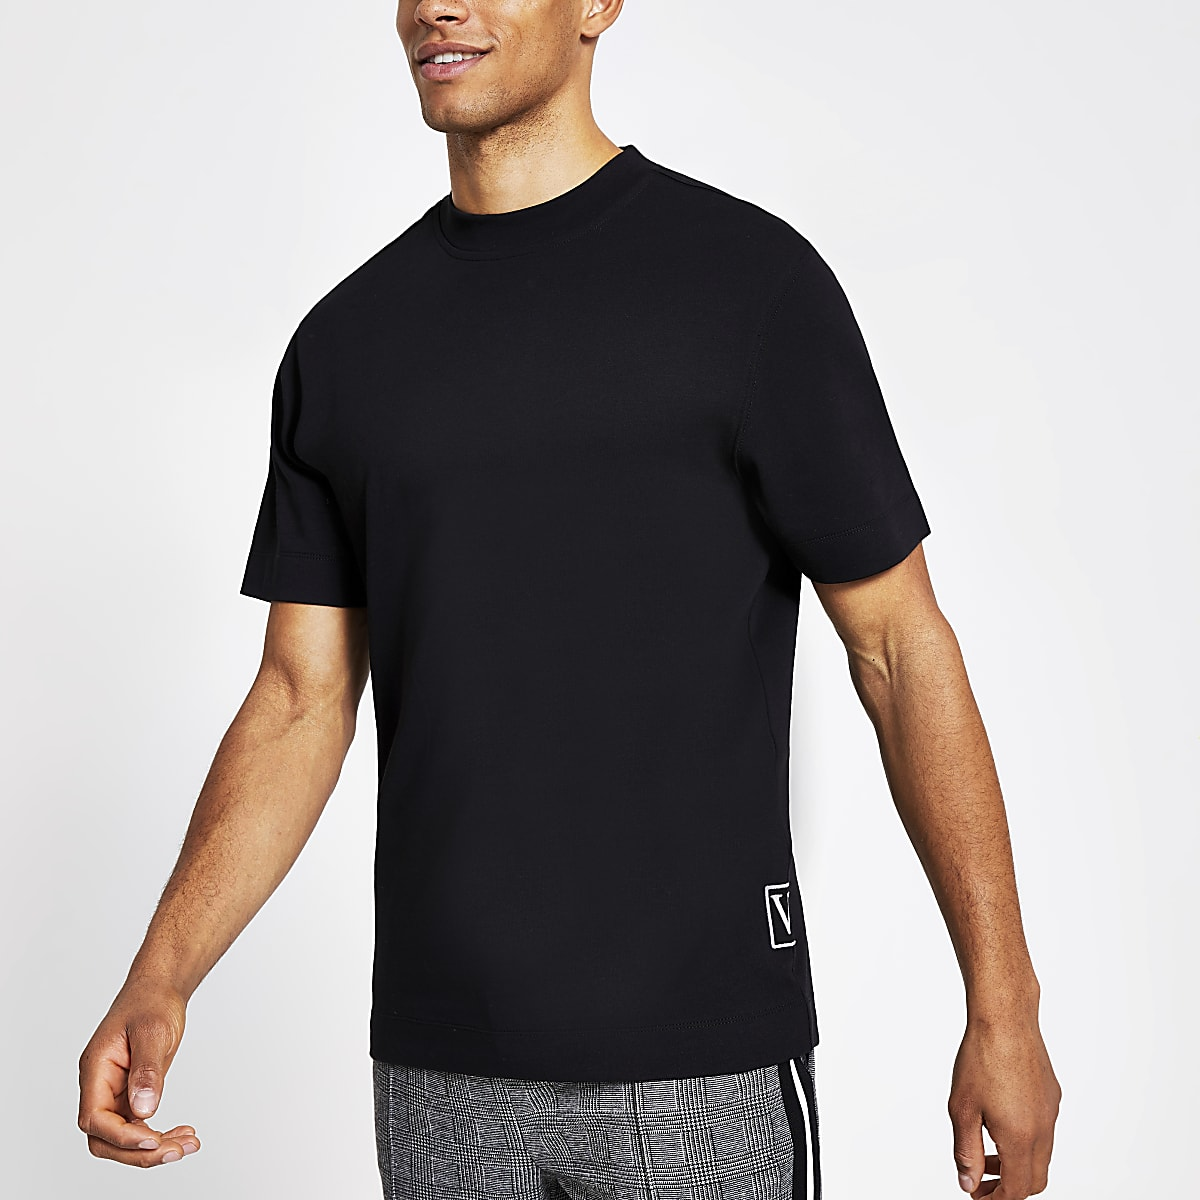 Black slim fit short sleeve T-shirt